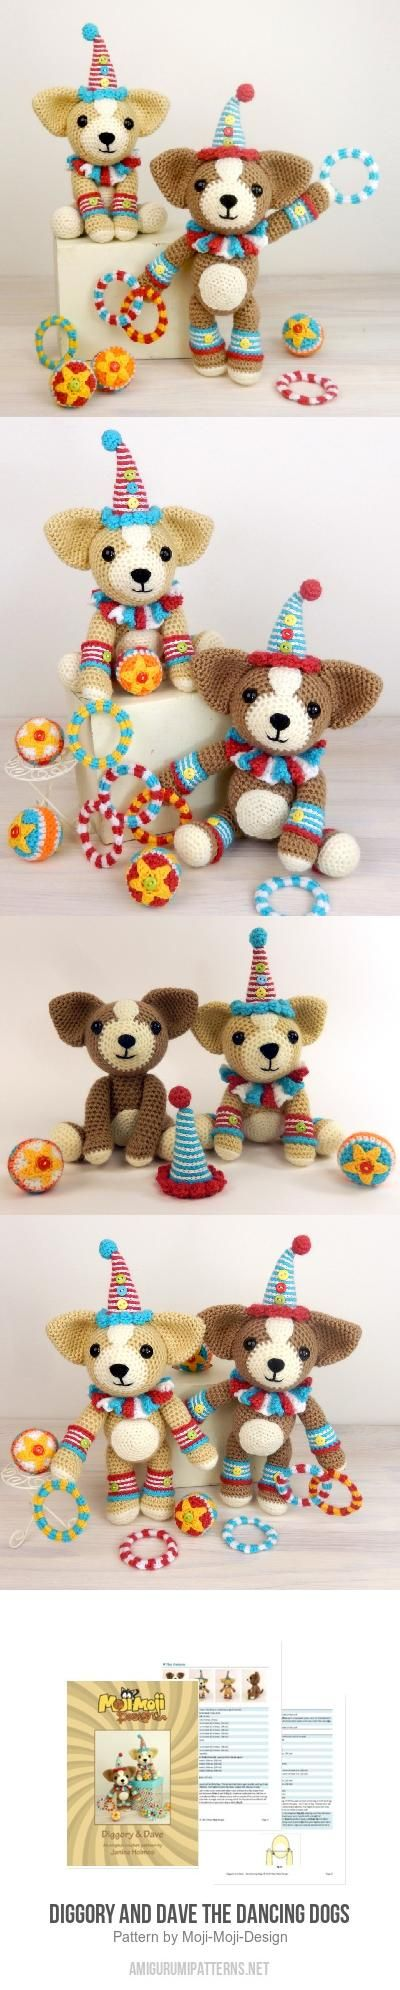 Diggory And Dave The Dancing Dogs Amigurumi Pattern